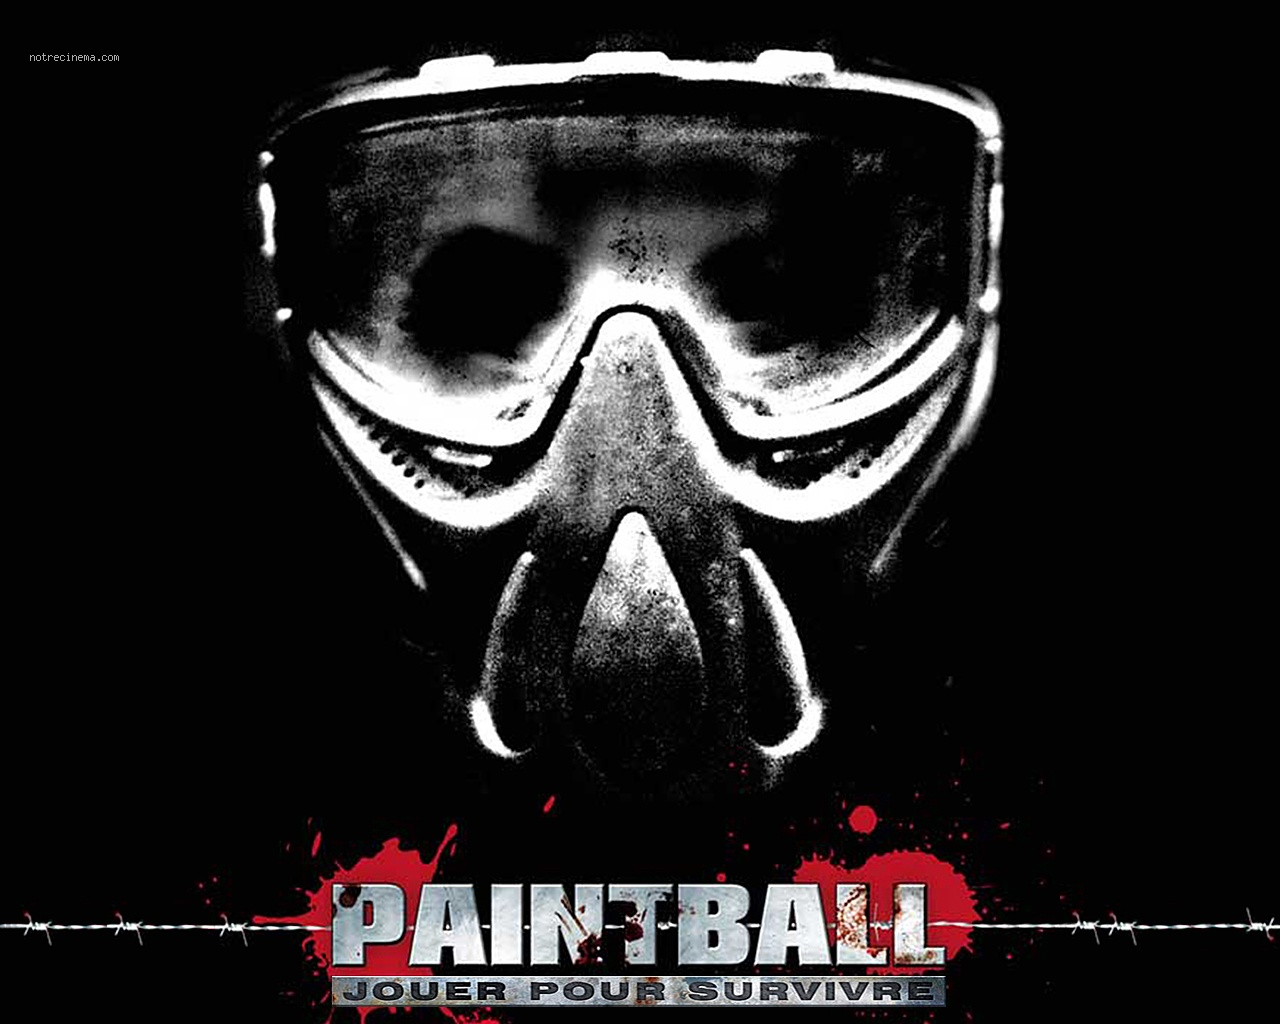 Pics photos pin wallpapers paintball wallpaper image